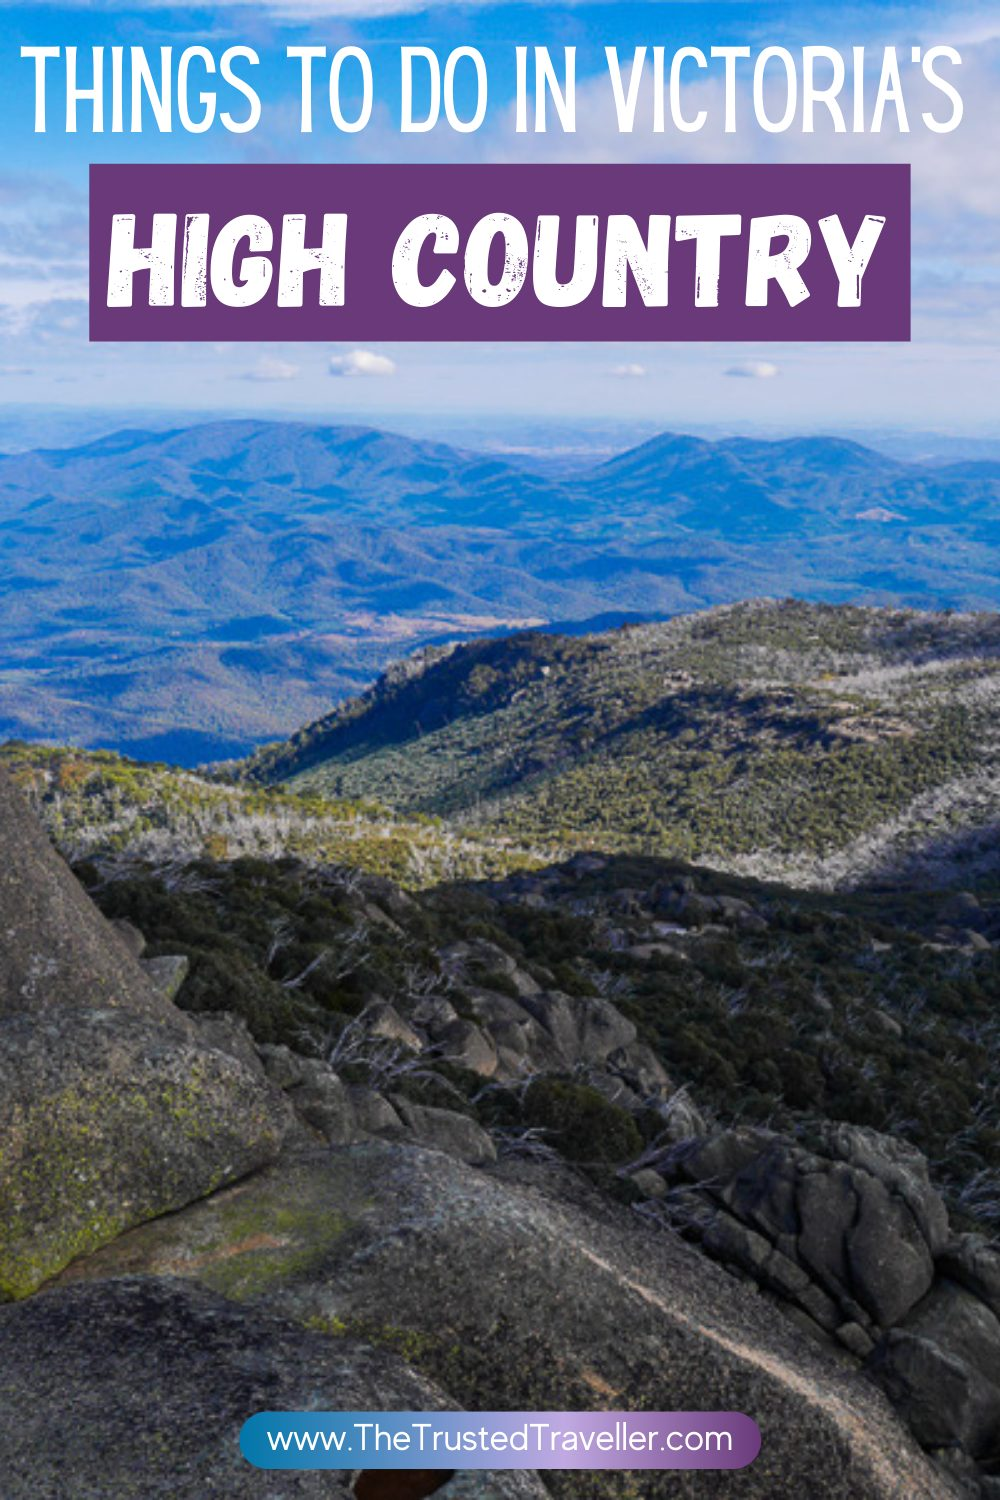 Things to Do in Victoria's High Country - The Trusted Traveller